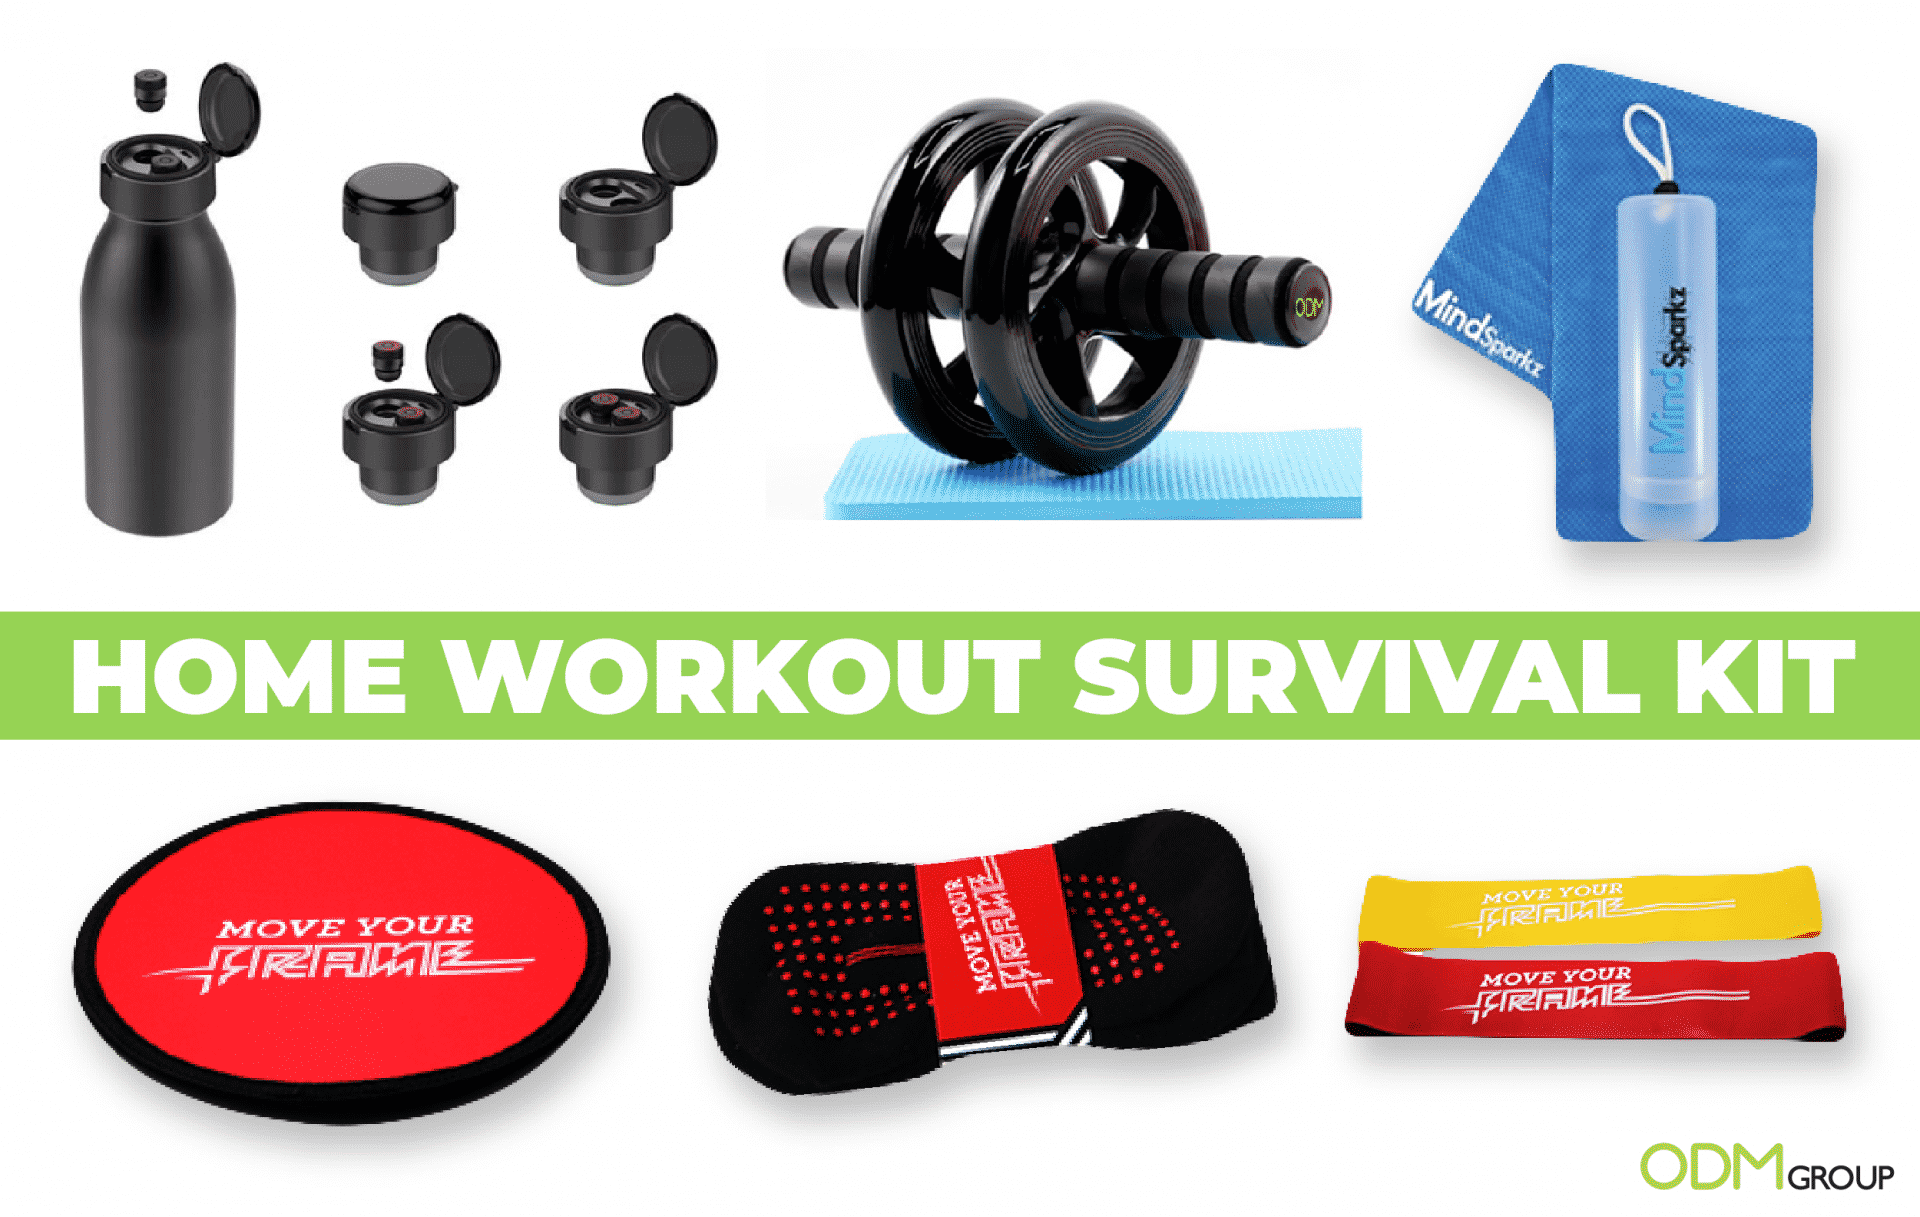 Home Workout Survival Kit